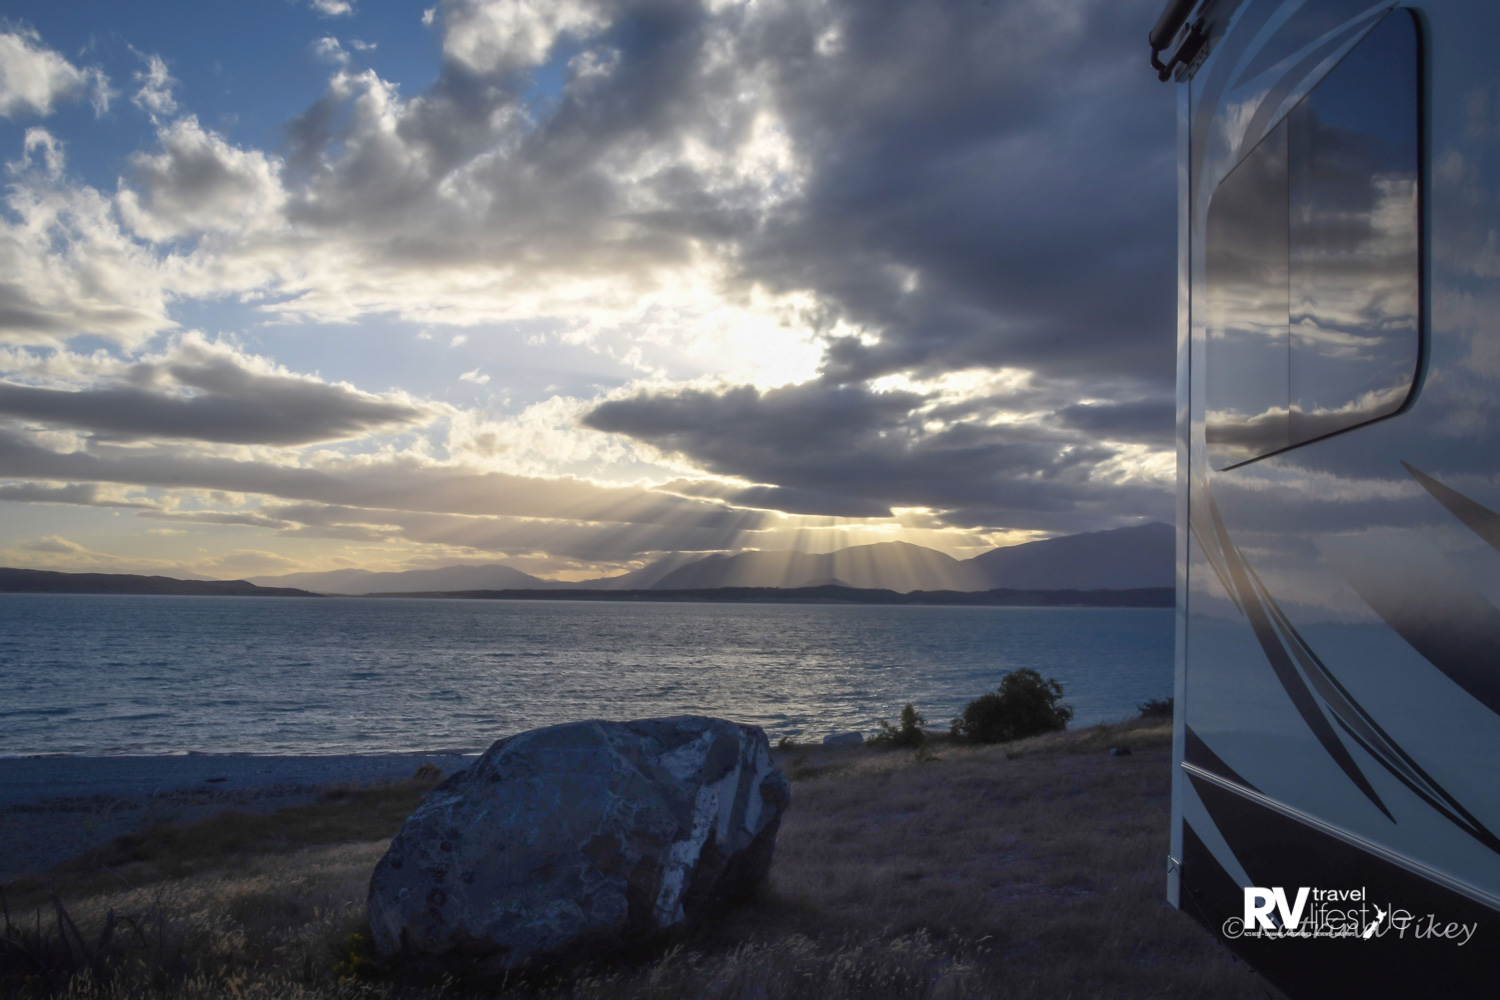 Lake Pukaki at the end of the day